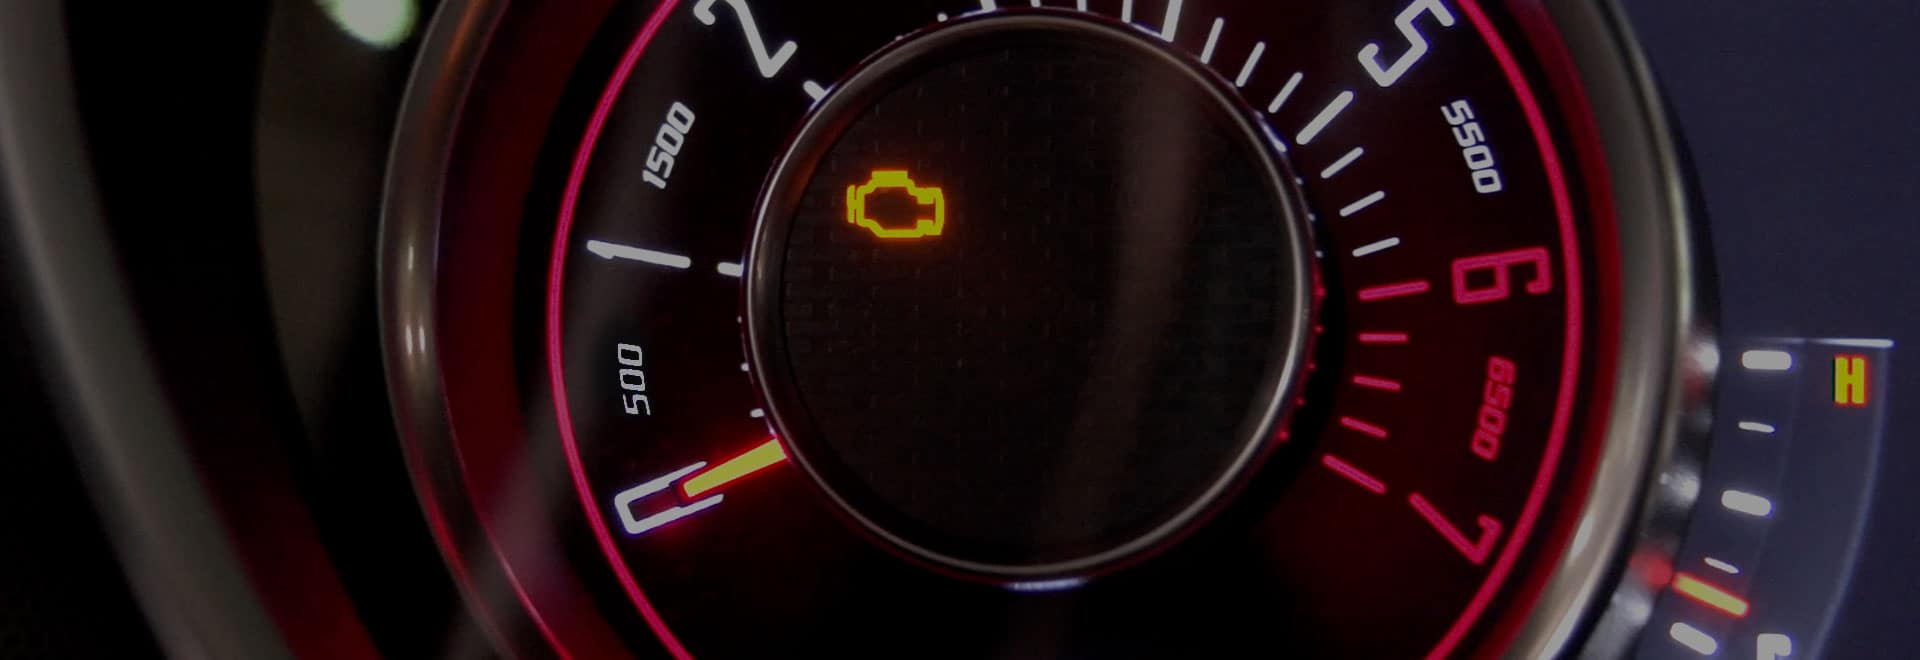 My Check Engine Light | Safford CJDRF of Winchester